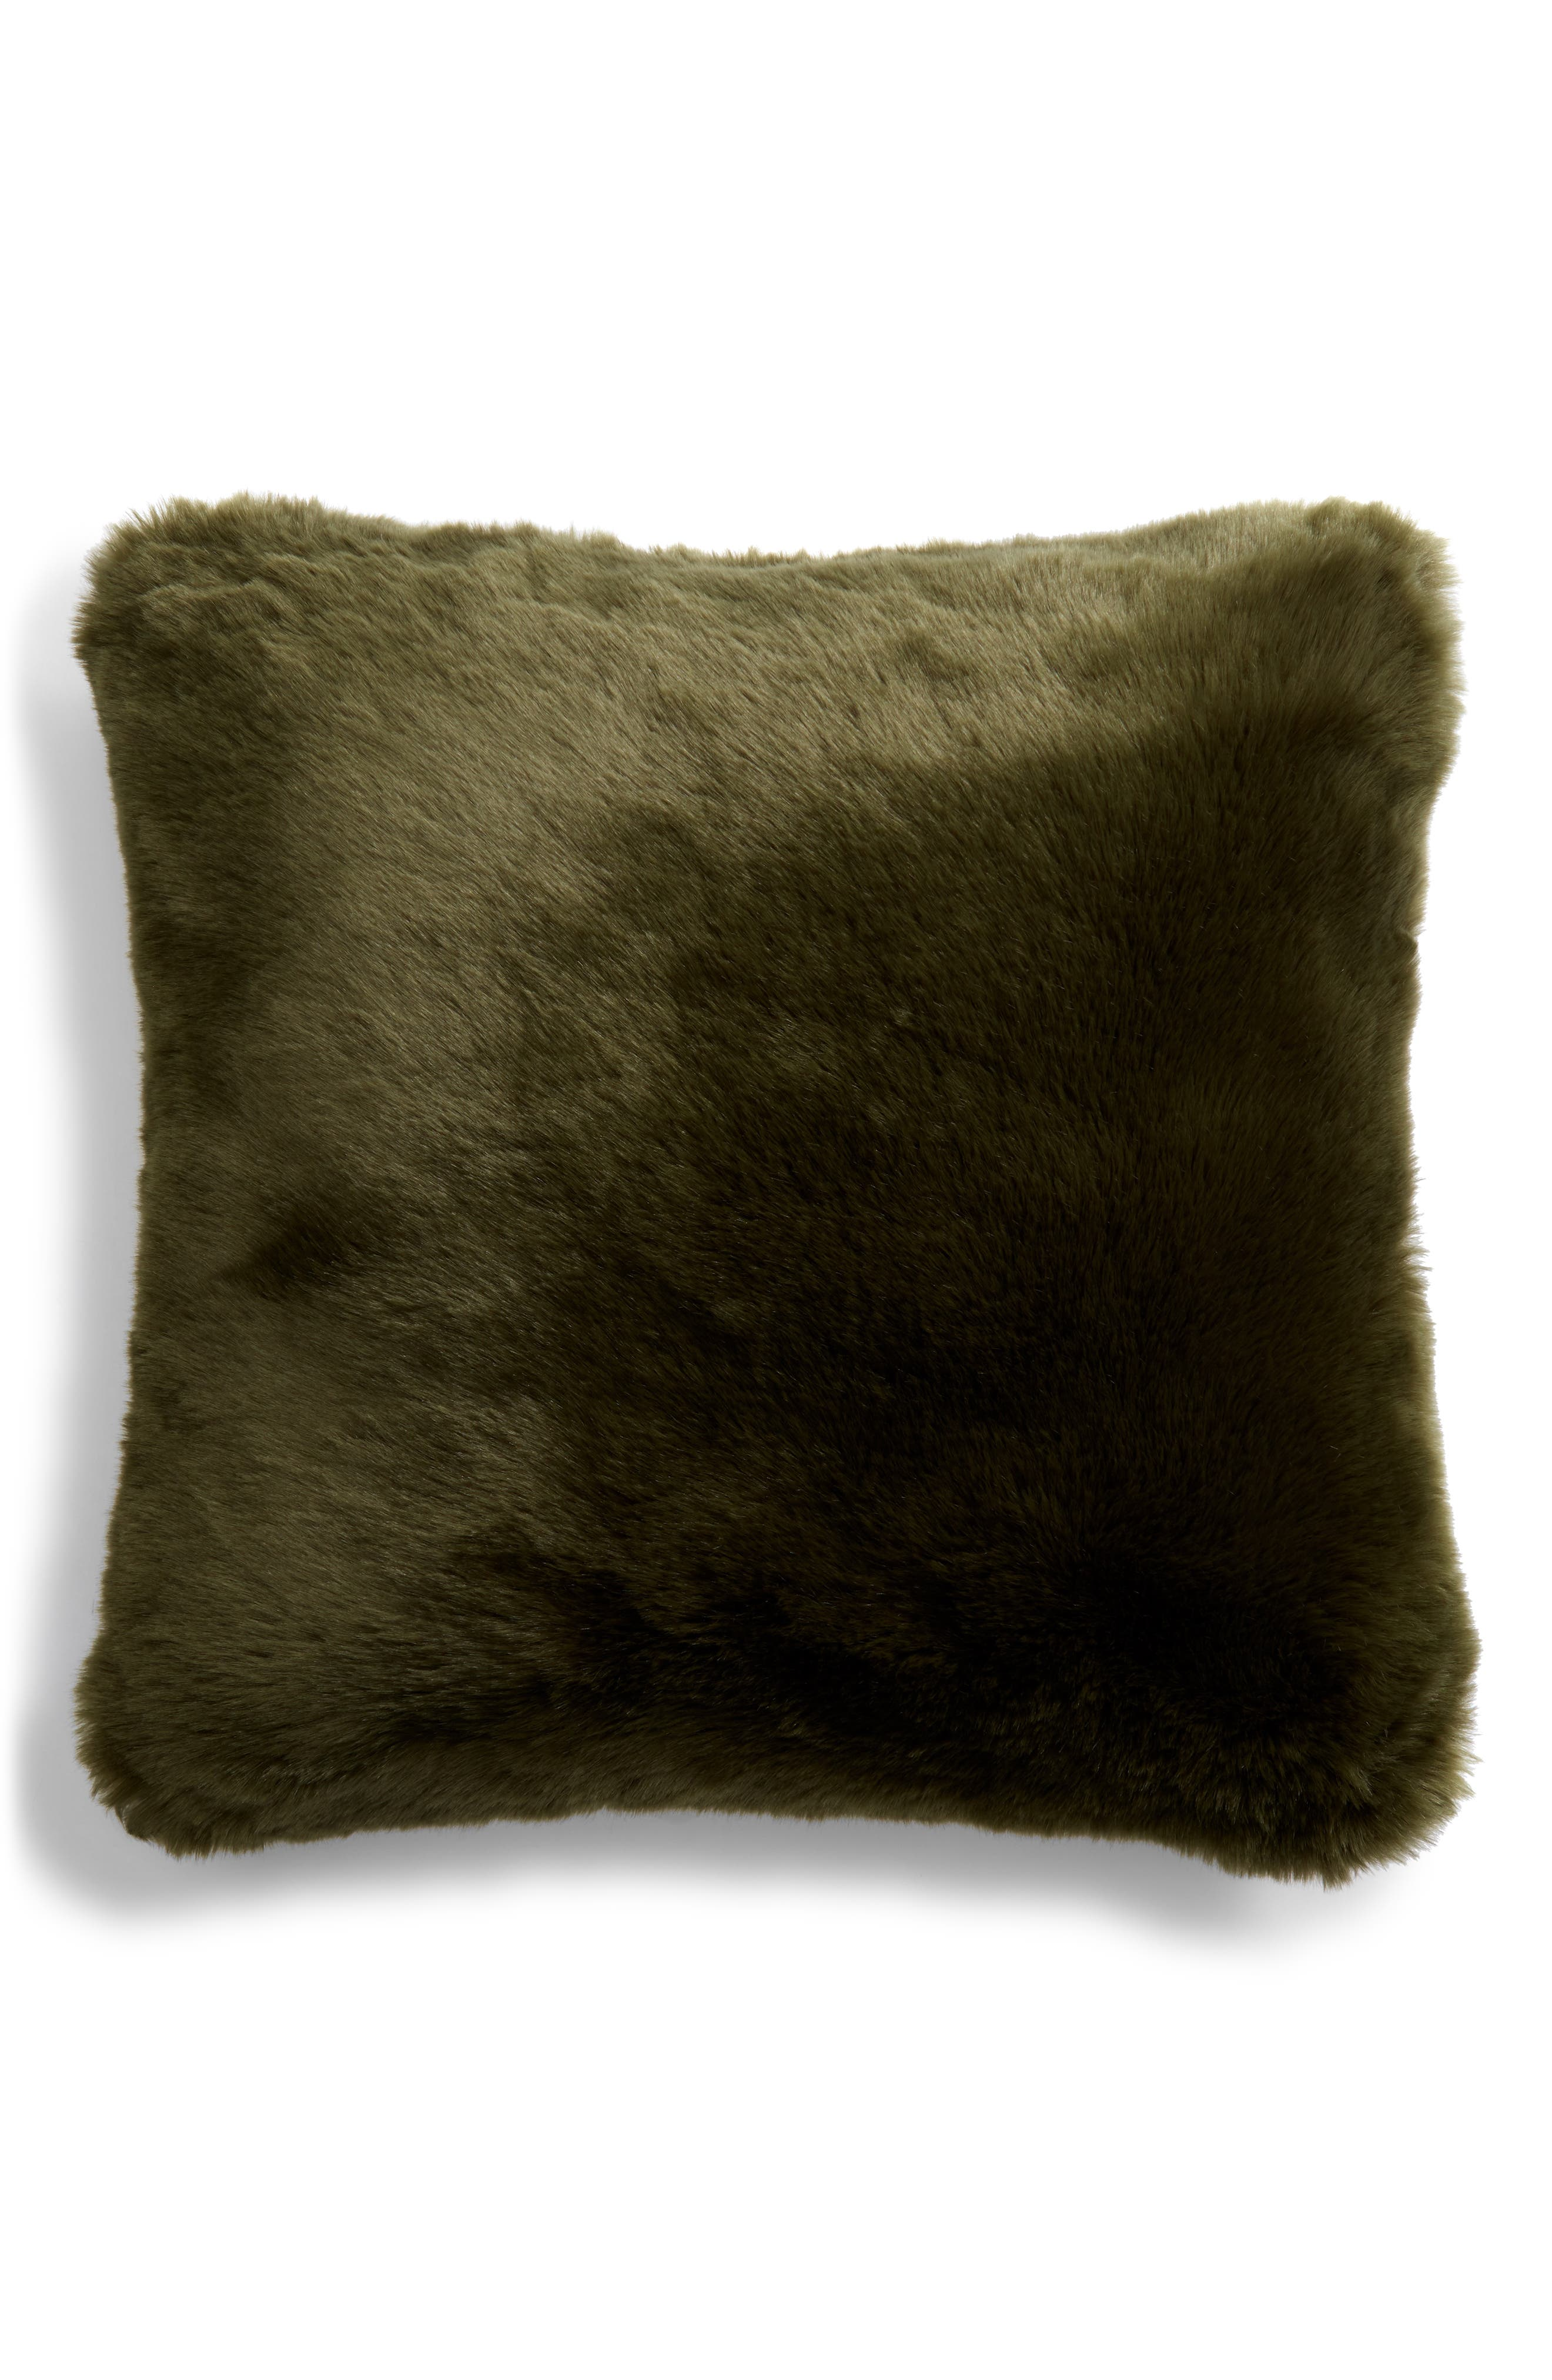 Cuddle Up Faux Fur Pillow,                             Alternate thumbnail 2, color,                             Green Cypress